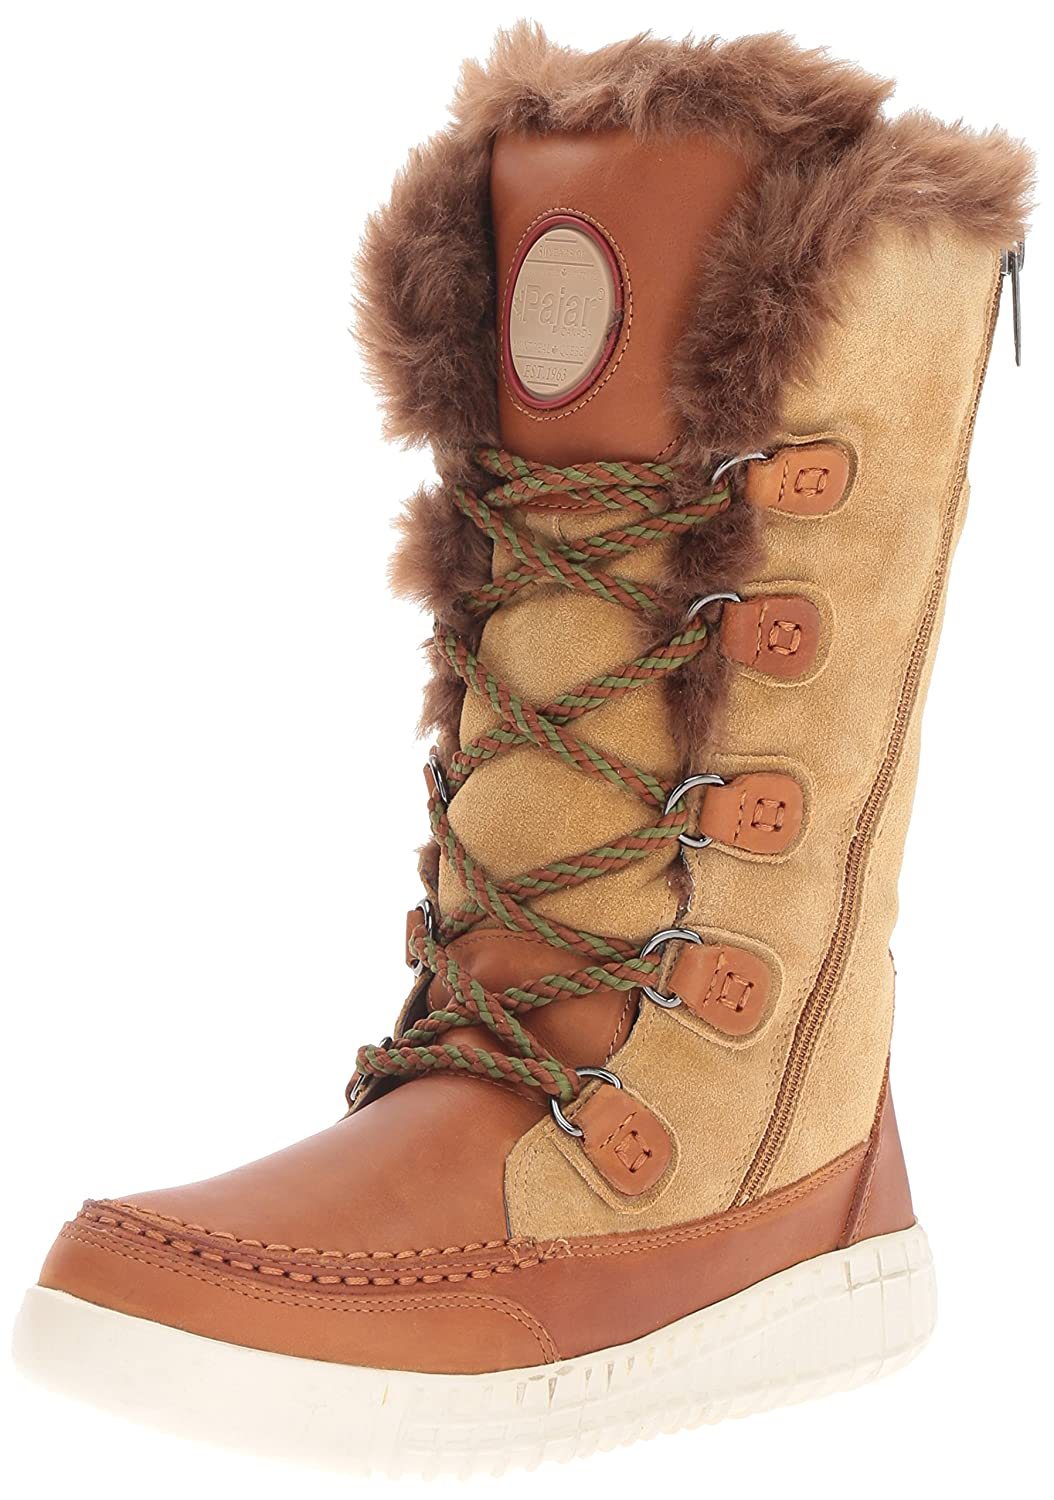 Pajar Women's Paityn Snow Boot B01B65NYHS 41 M EU / 10 B(M) US|Tan/Church